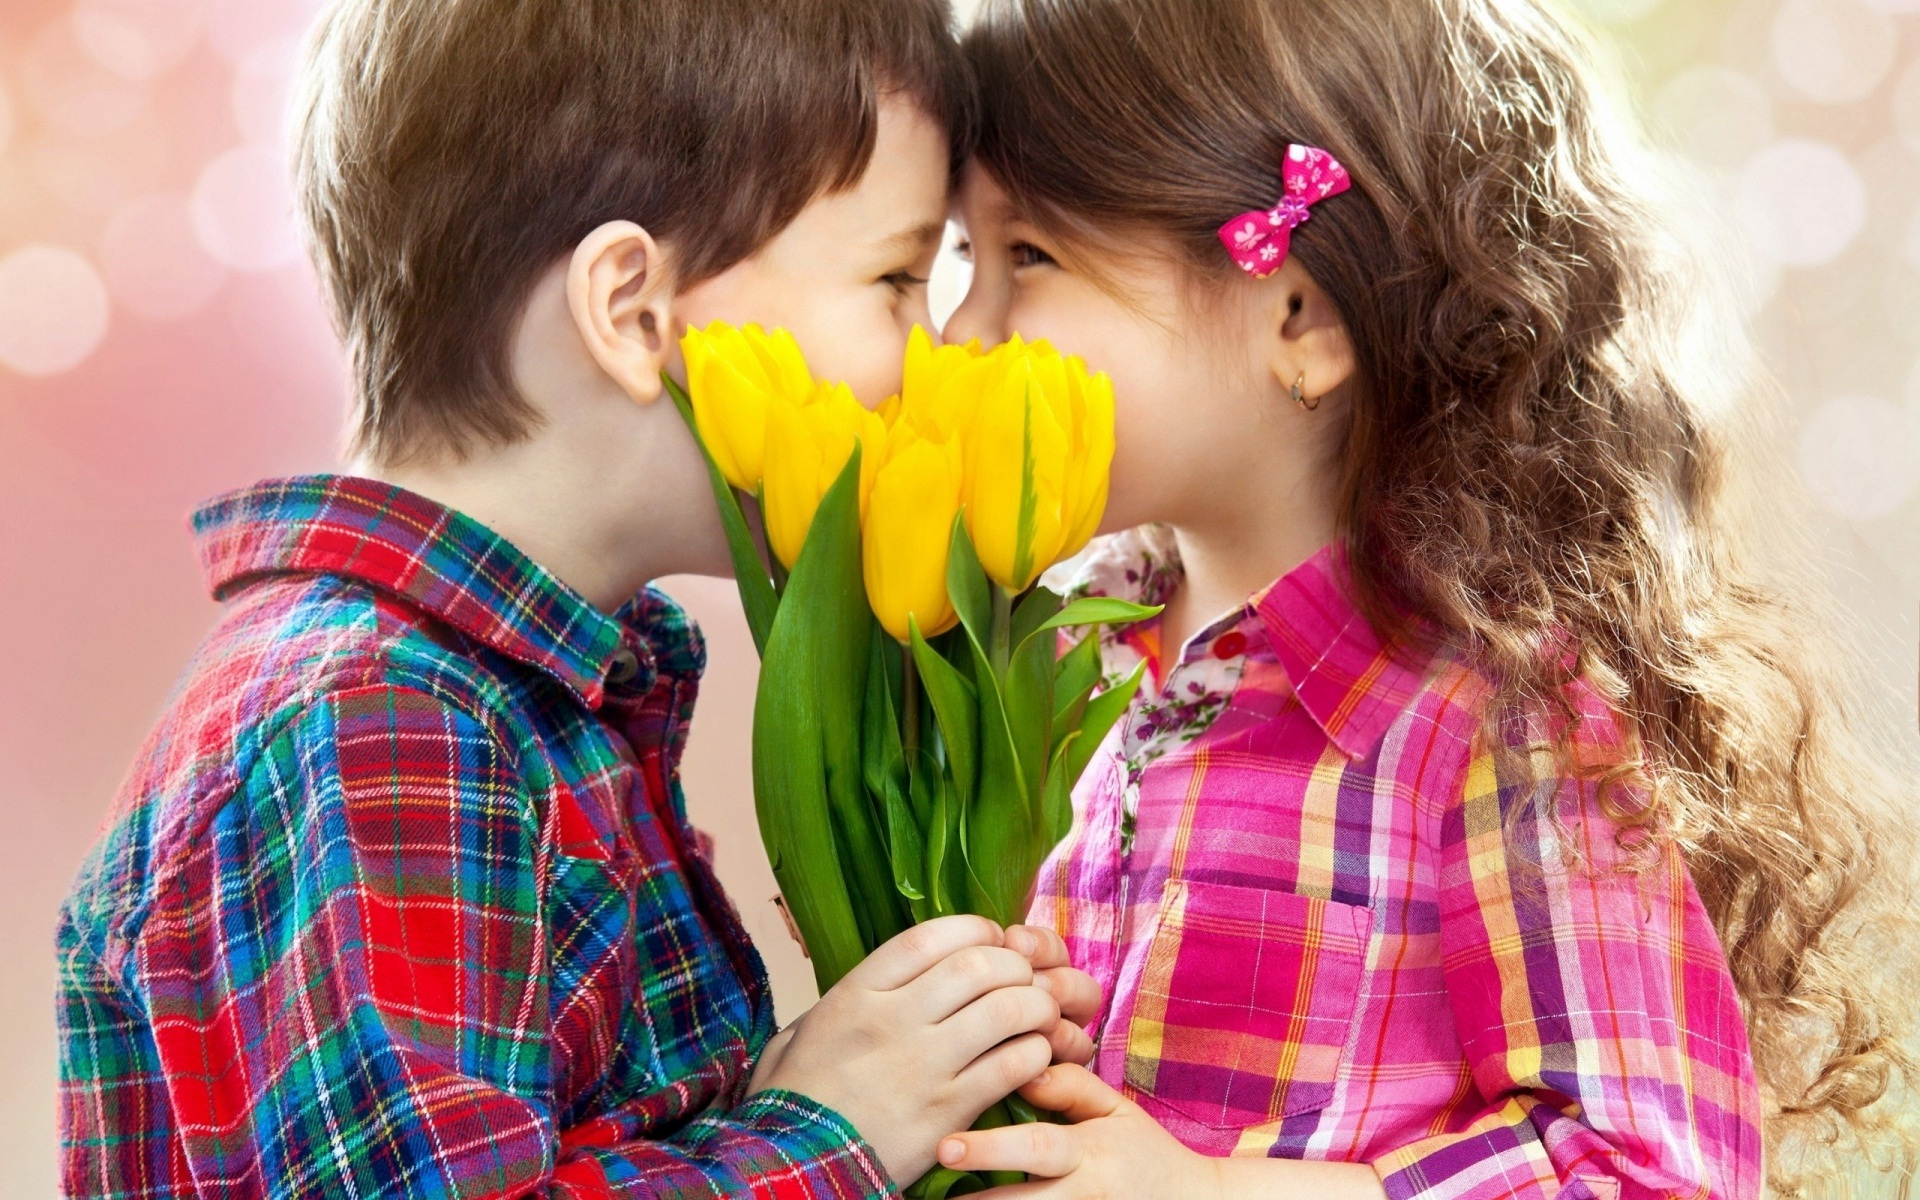 Happy Baby Kiss Day Wallpaper Dowanload Collection  Only hd 1920x1200